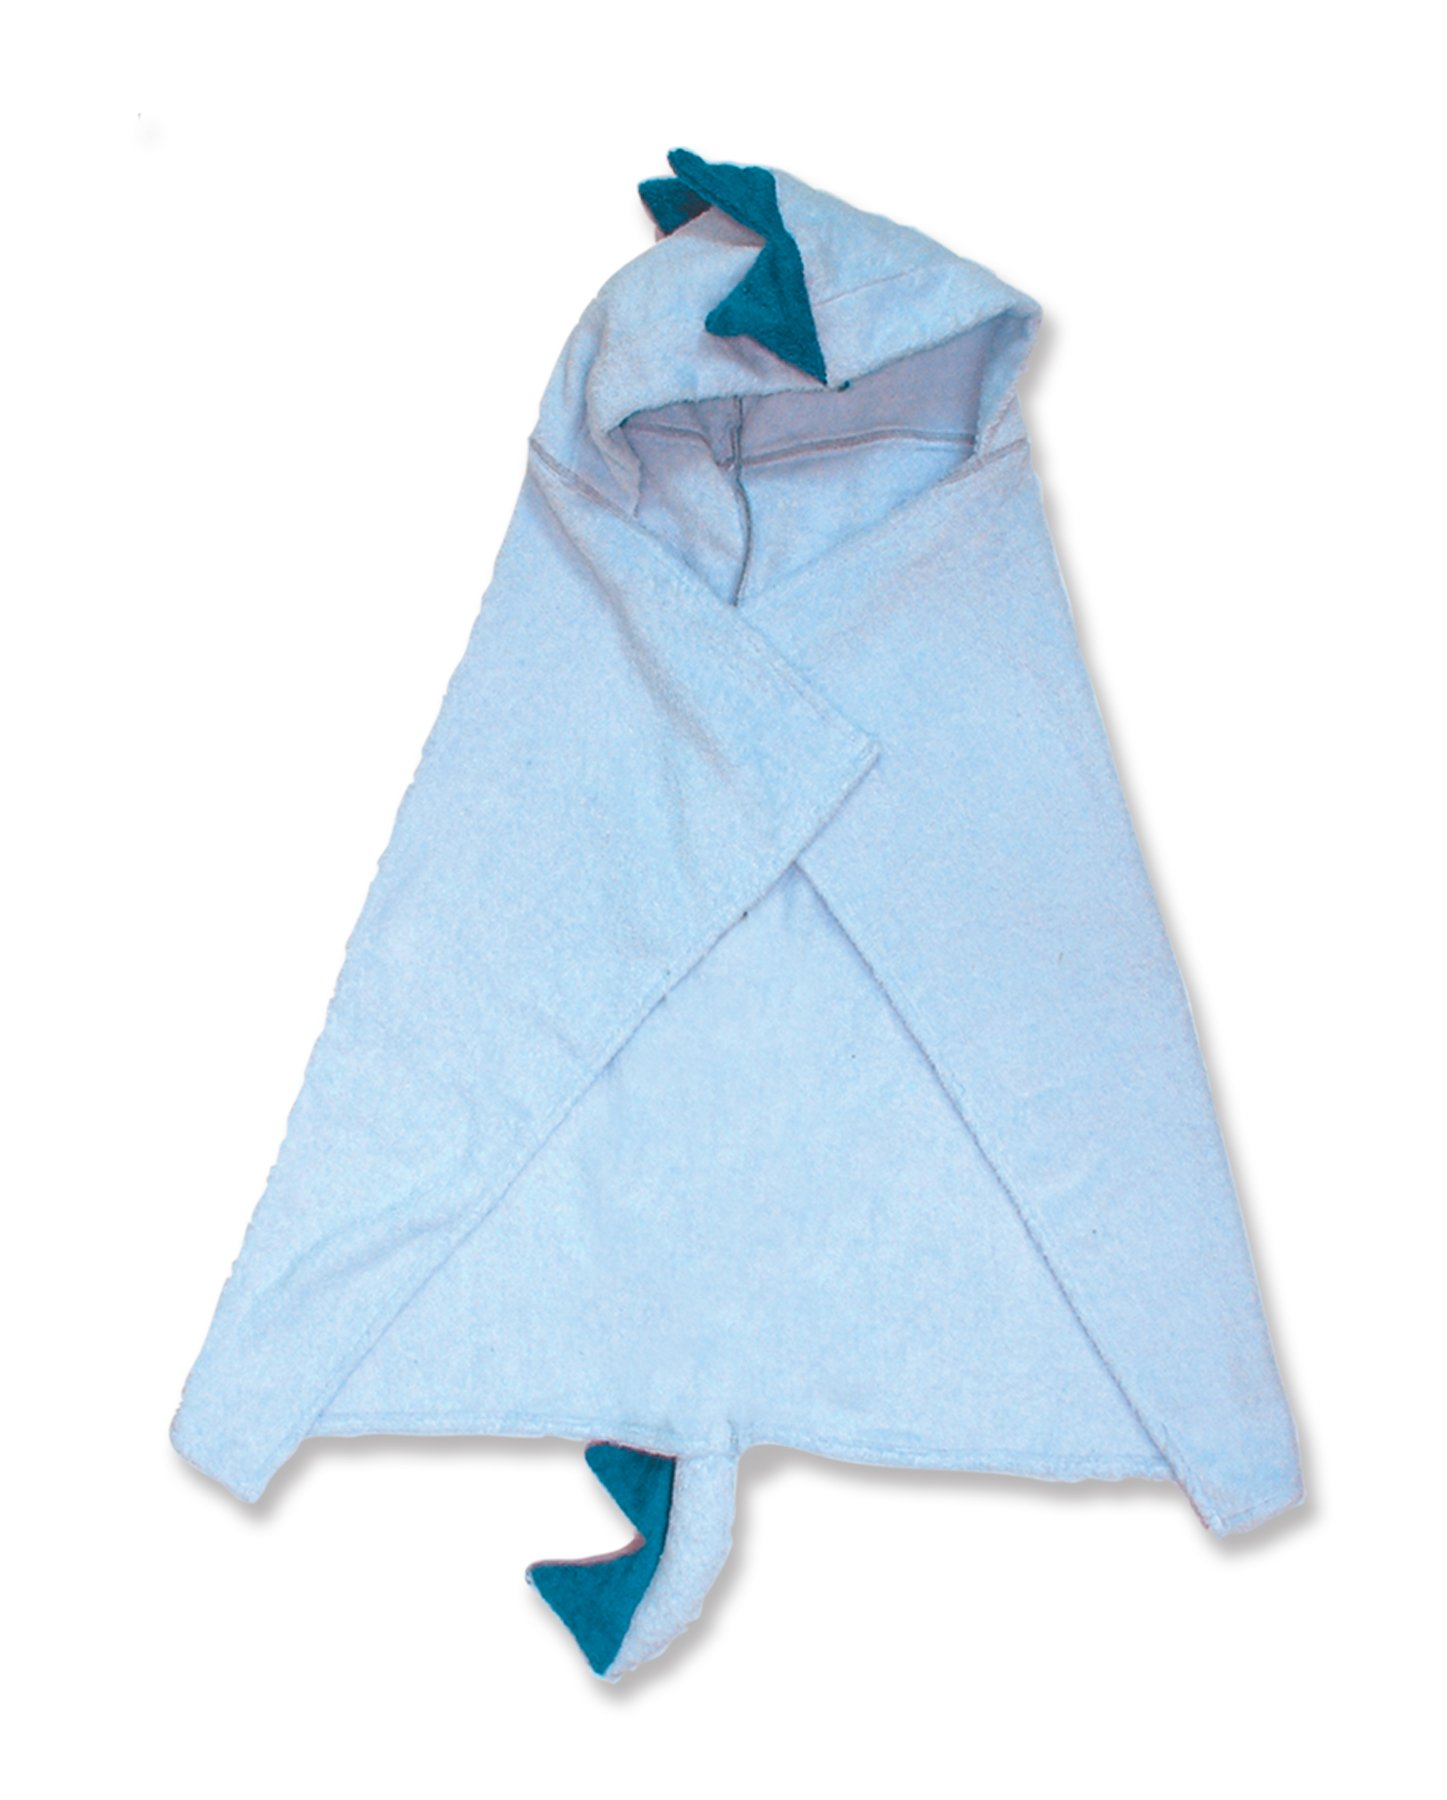 Trend-Lab Character Premier Hooded Towel, Blue Dinosaur by Trend Lab